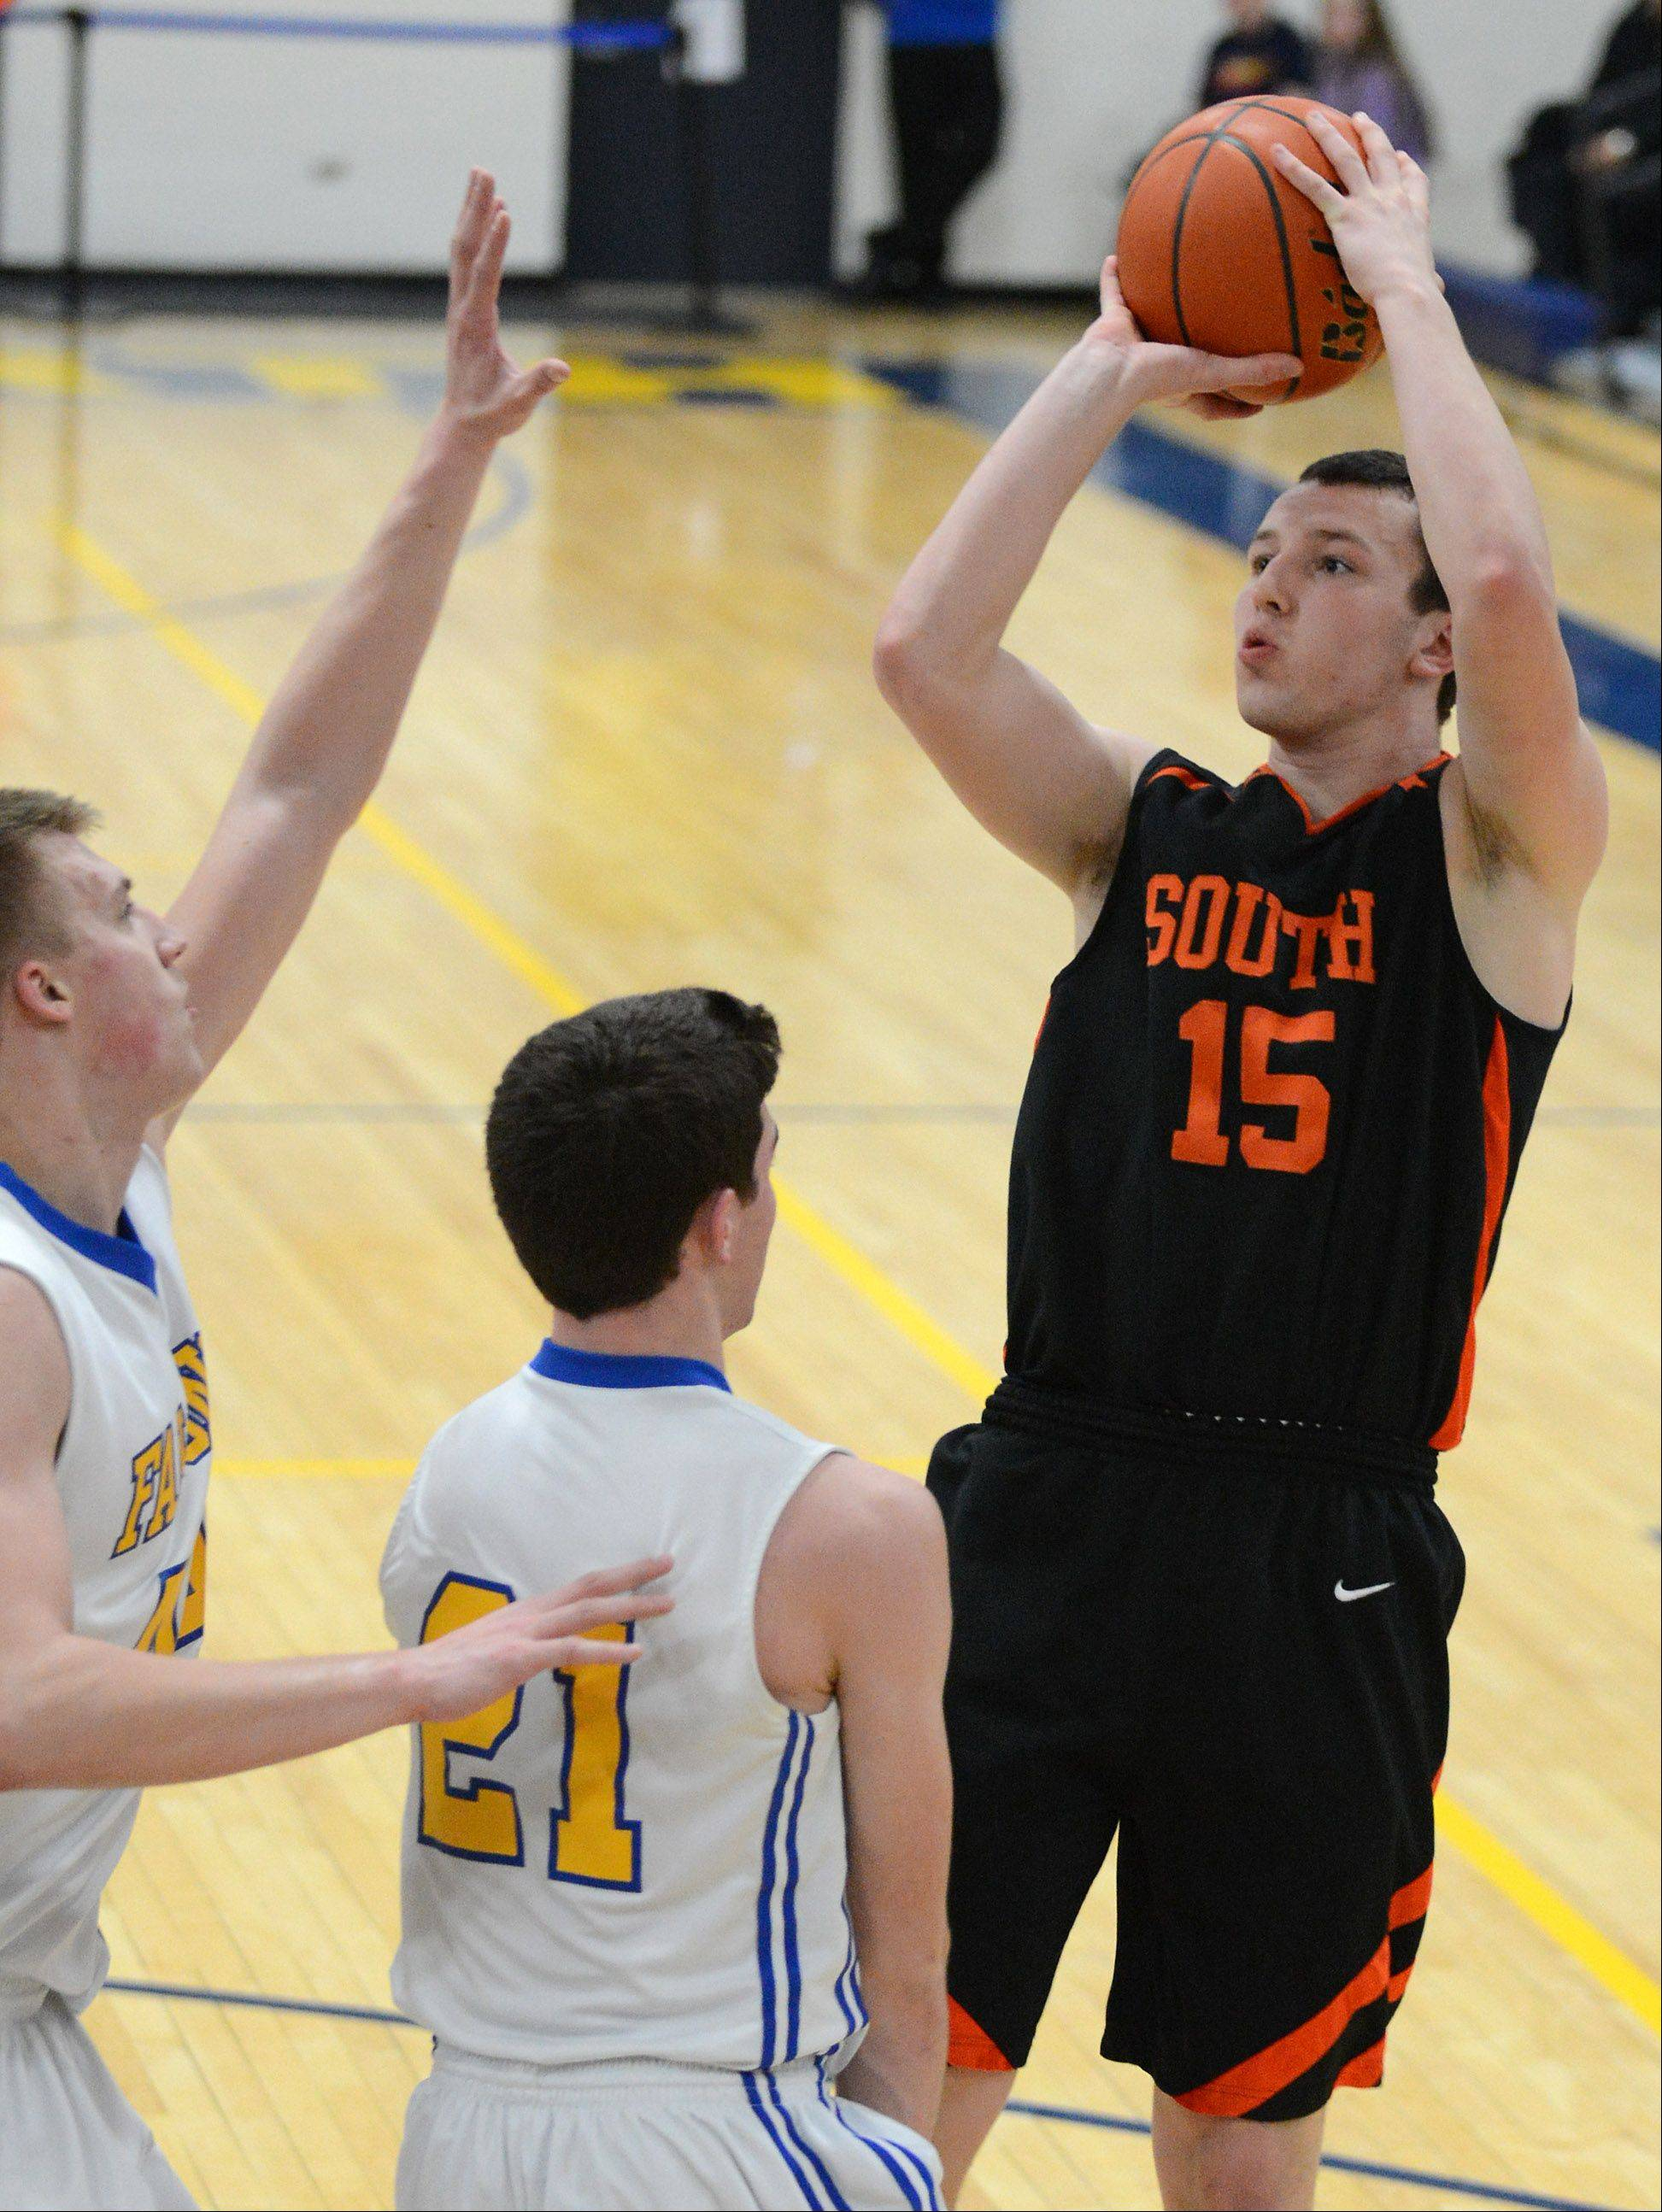 Wheaton Warrenville South's Joe Metzger shoots from the outside.